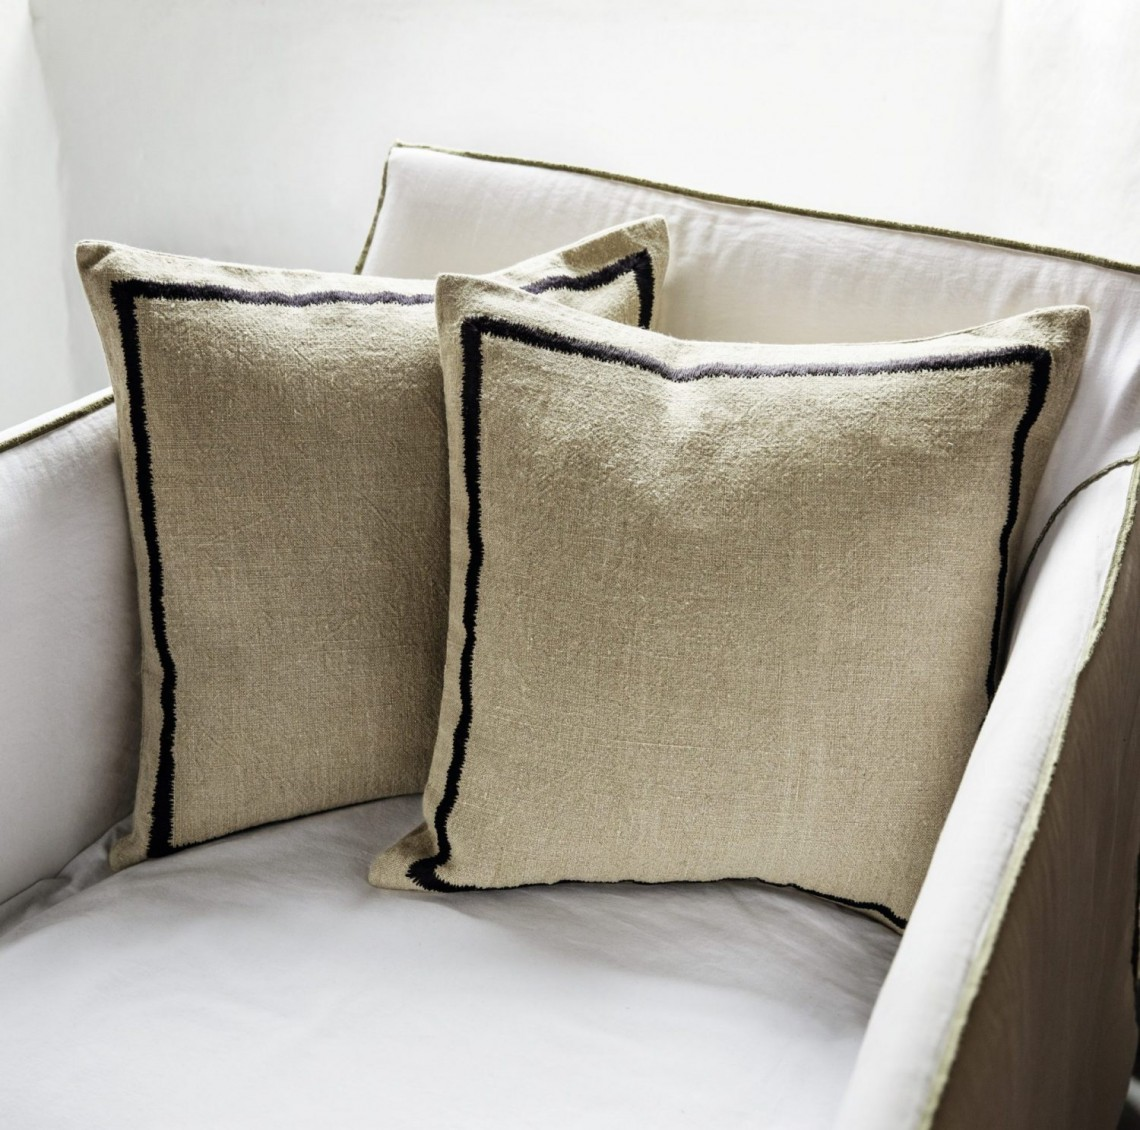 Camilla Bellord Interiors Kea Cushion